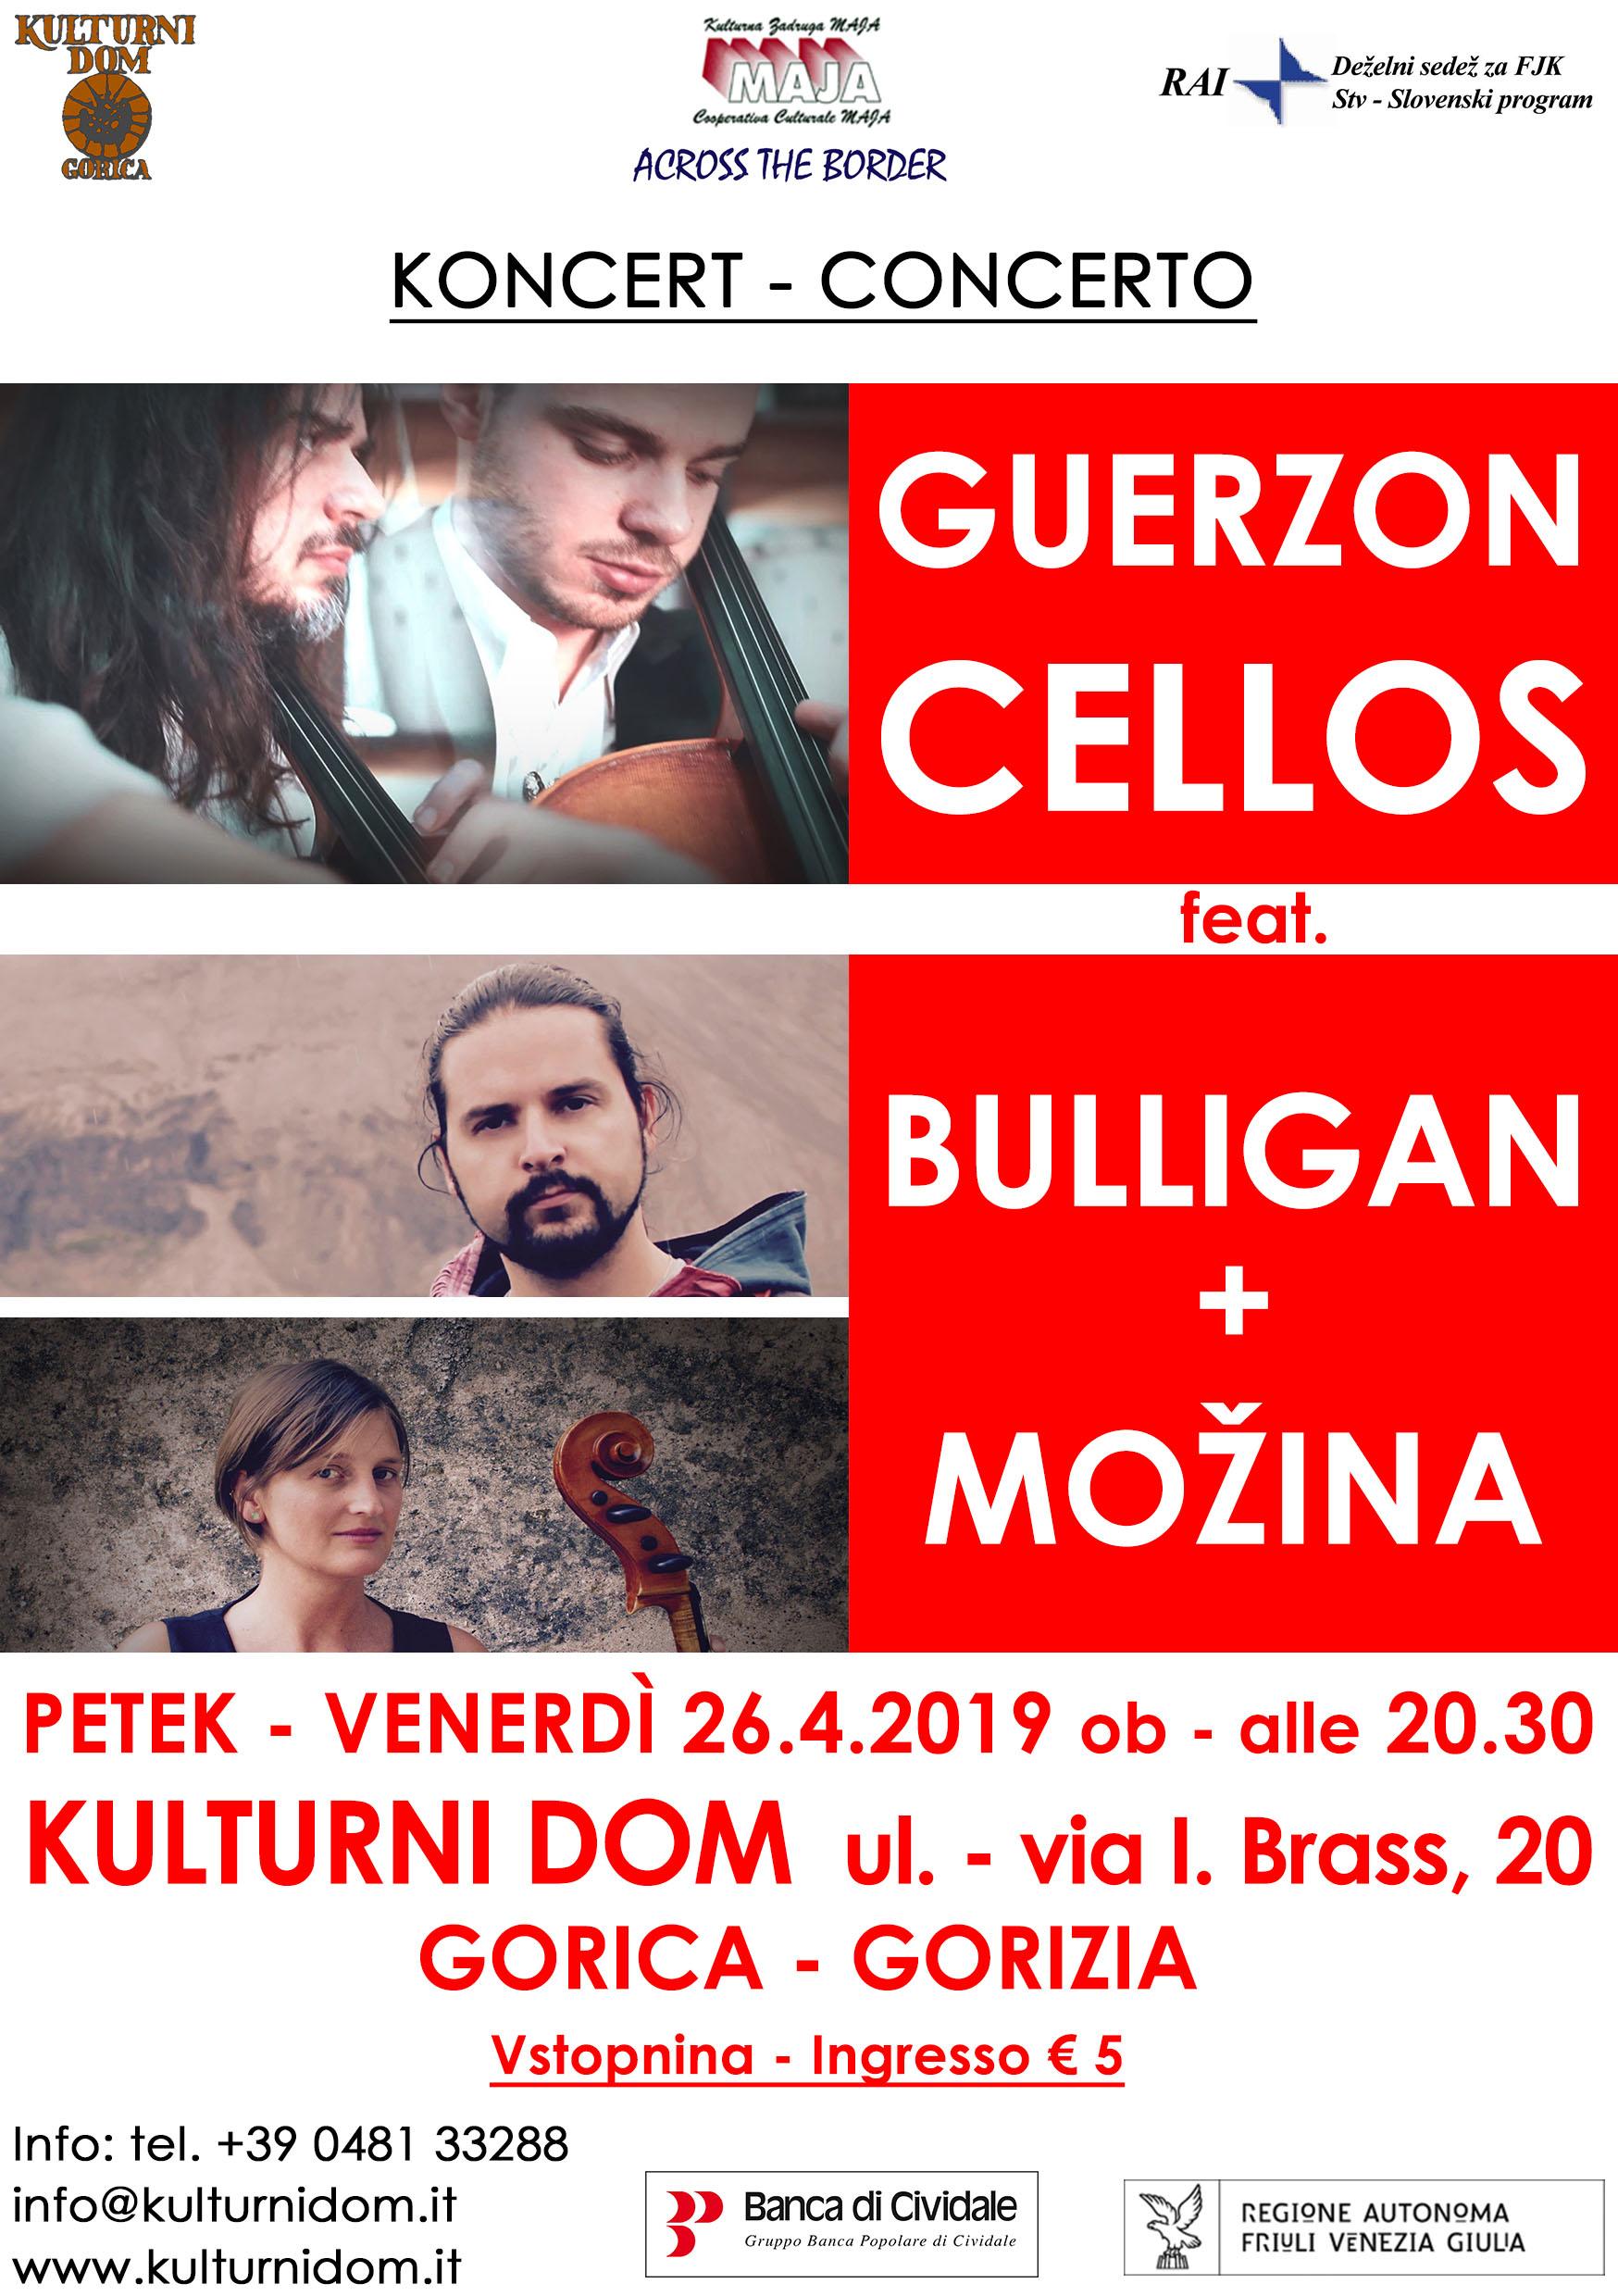 Guerzoncellos in concert